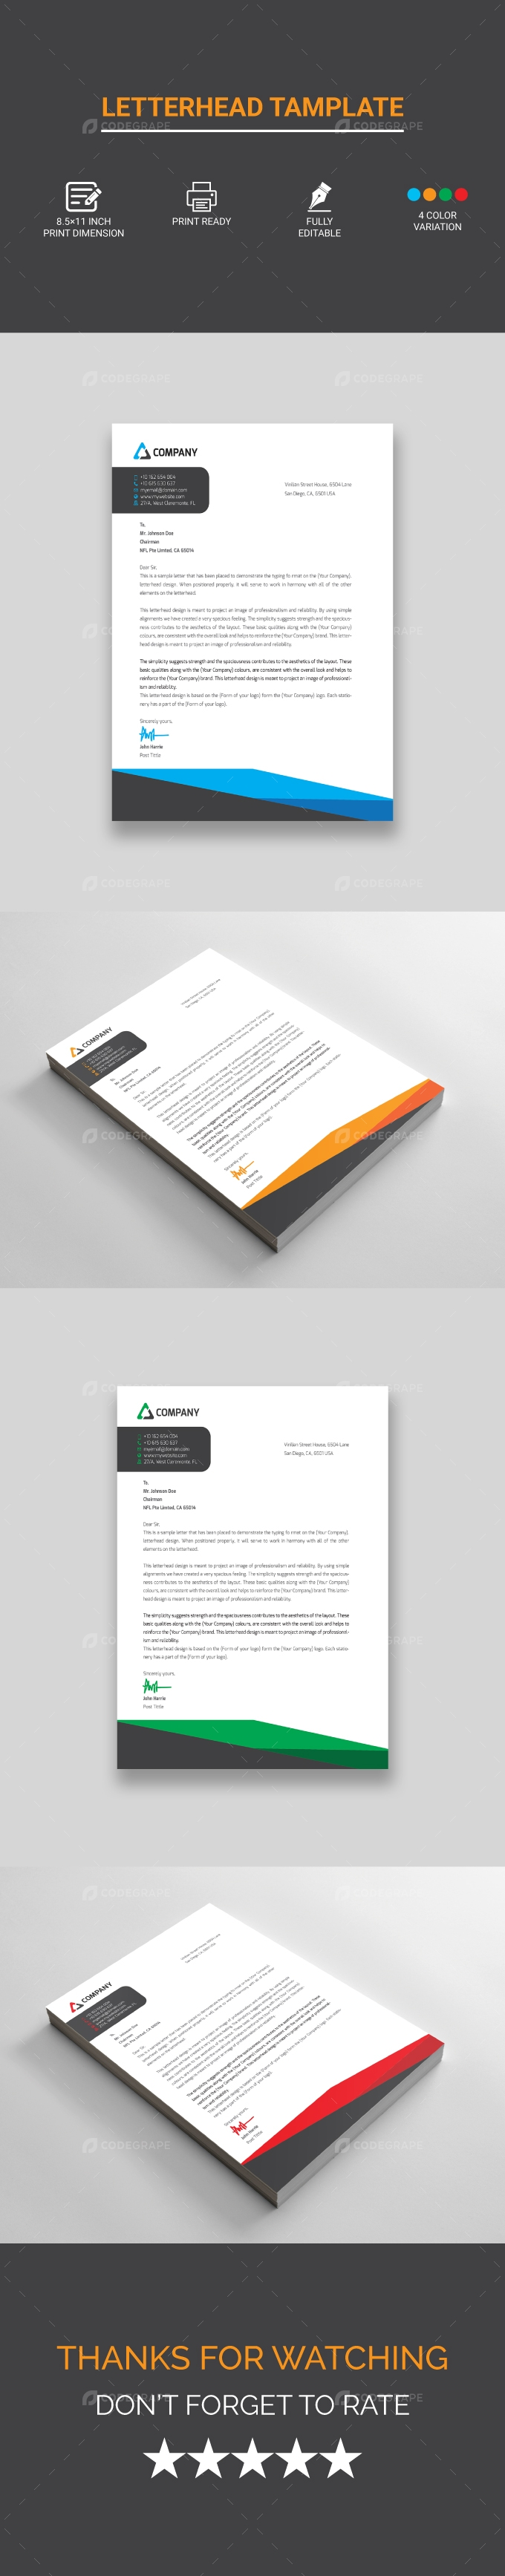 Corporate Letterhead Design Vector